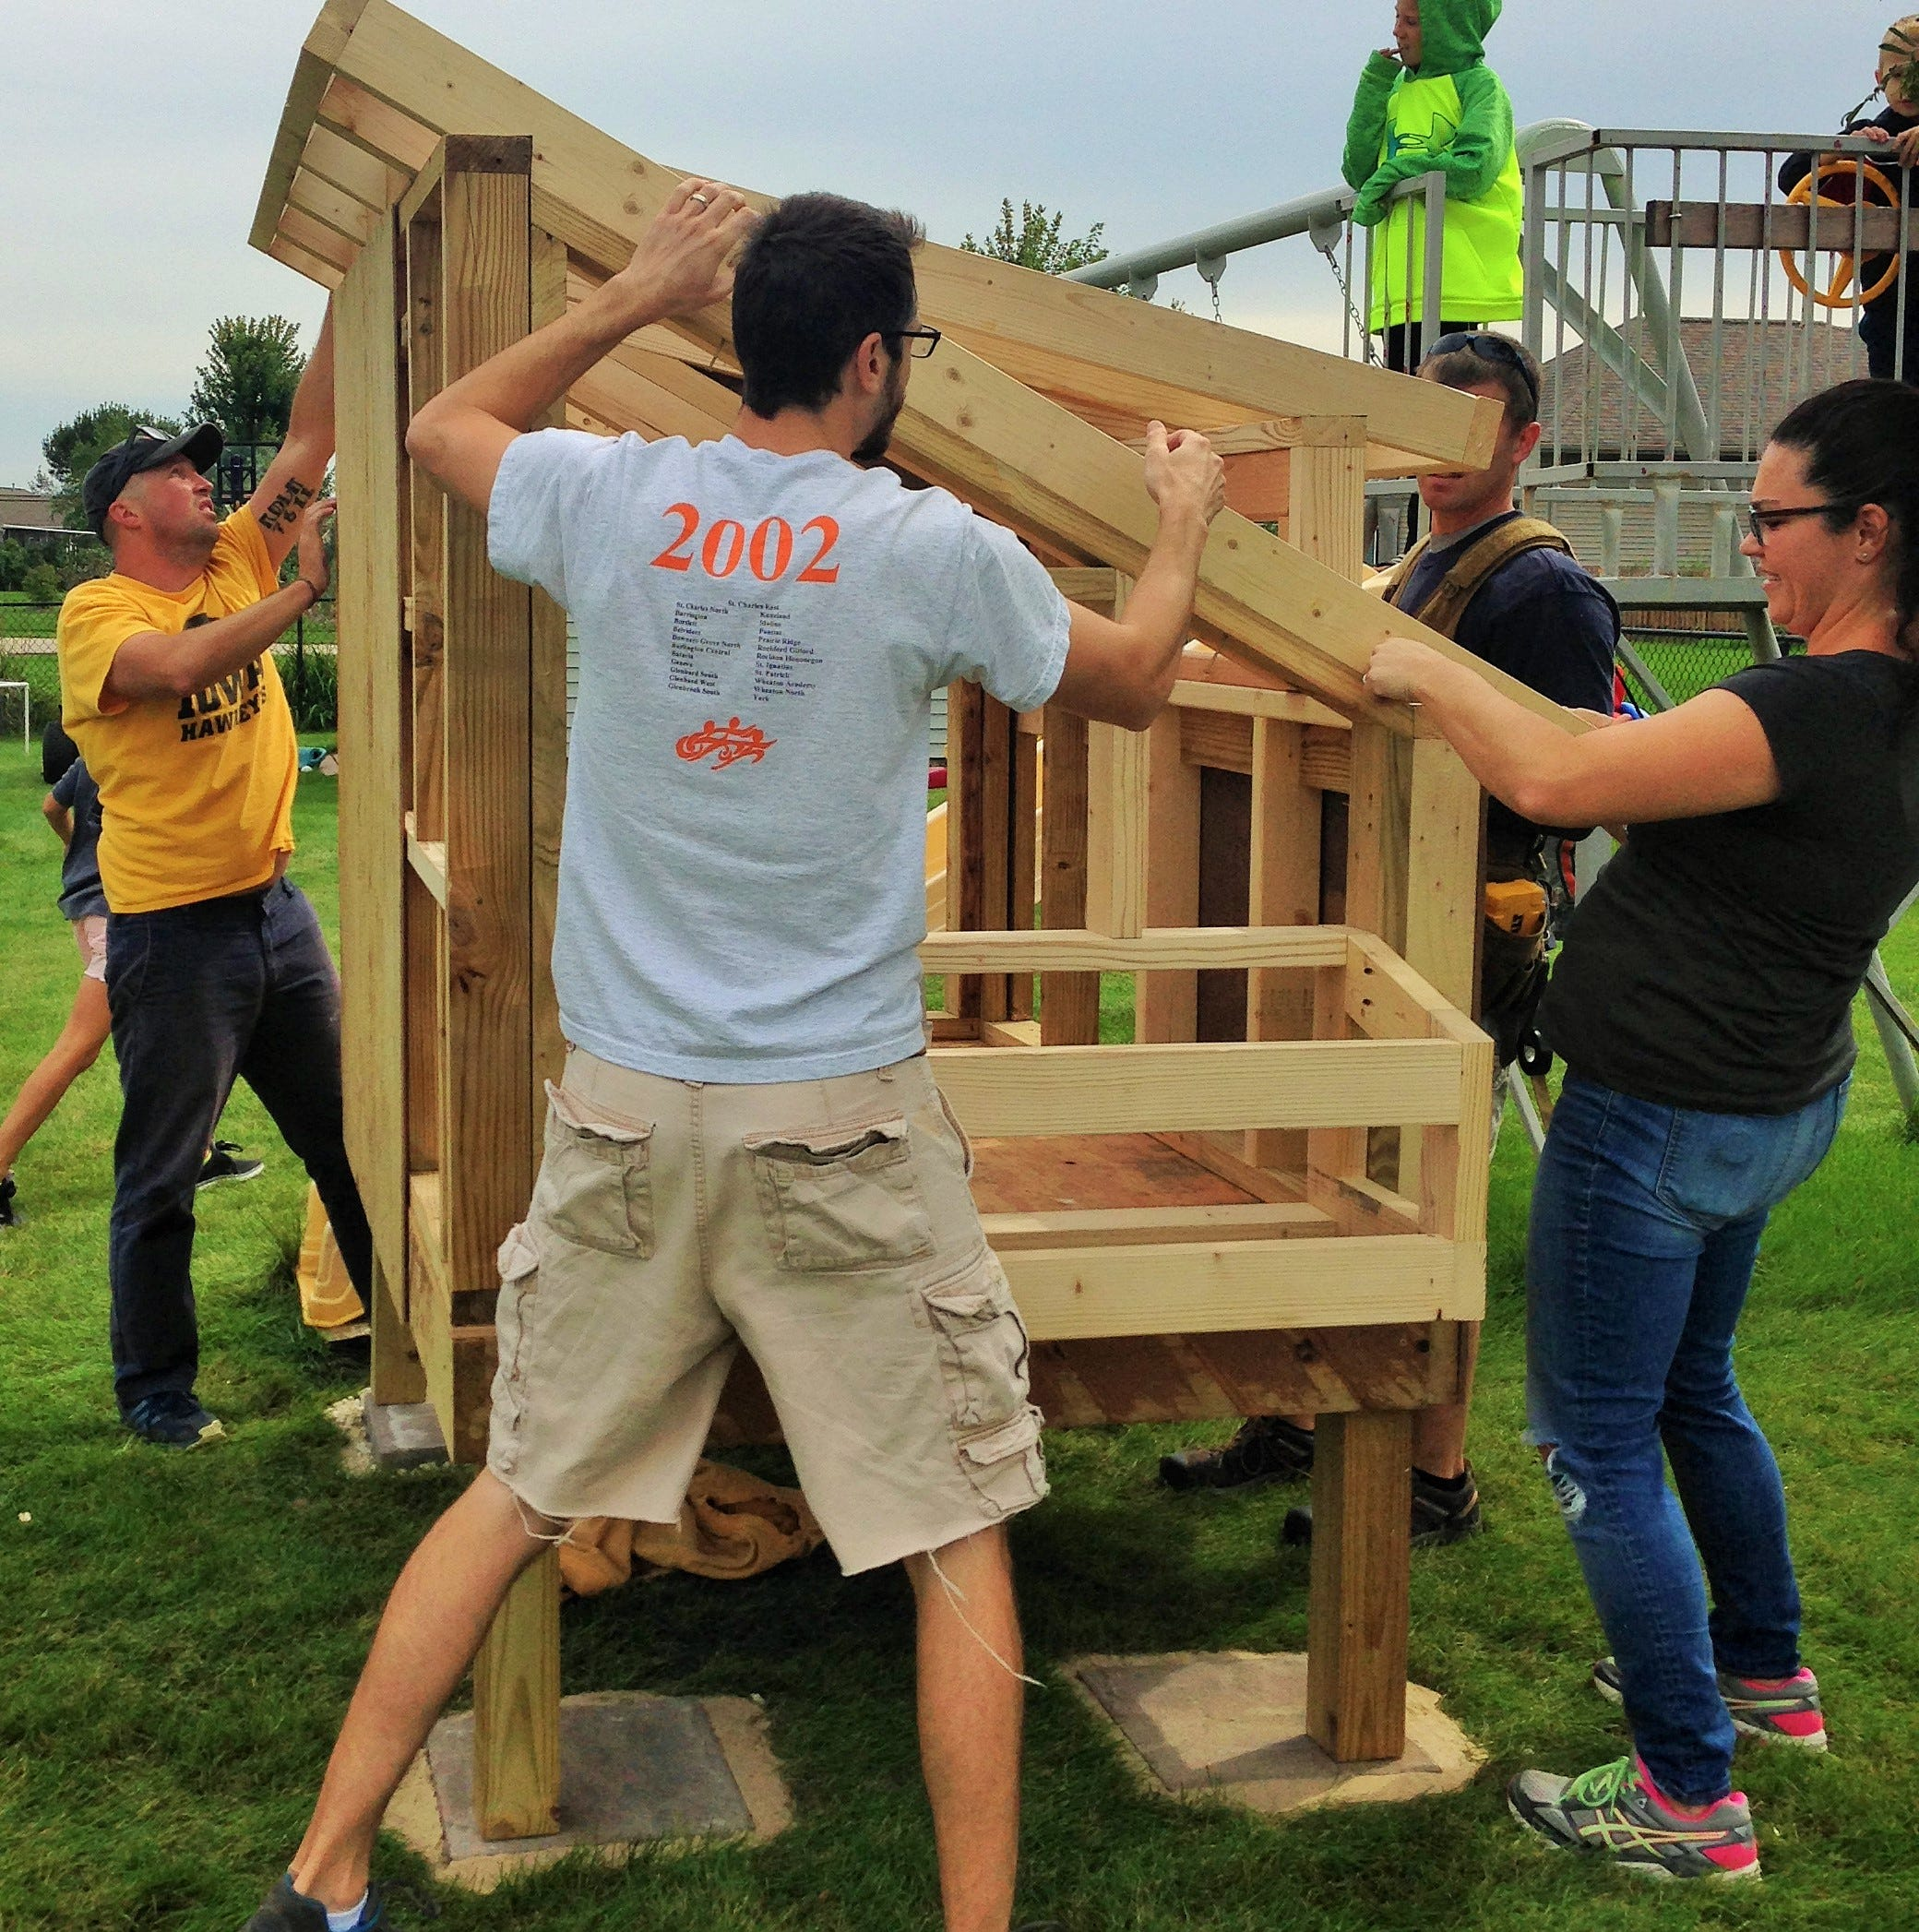 """In their own version of an Amish barn-raising, North Liberty neighbors of the Carne family recently conducted a """"coop-raising"""" to help erect this urban chicken house.  Working from left are Tony Hakes, Clint Carne, Amy Schultz and Mark Bennett."""